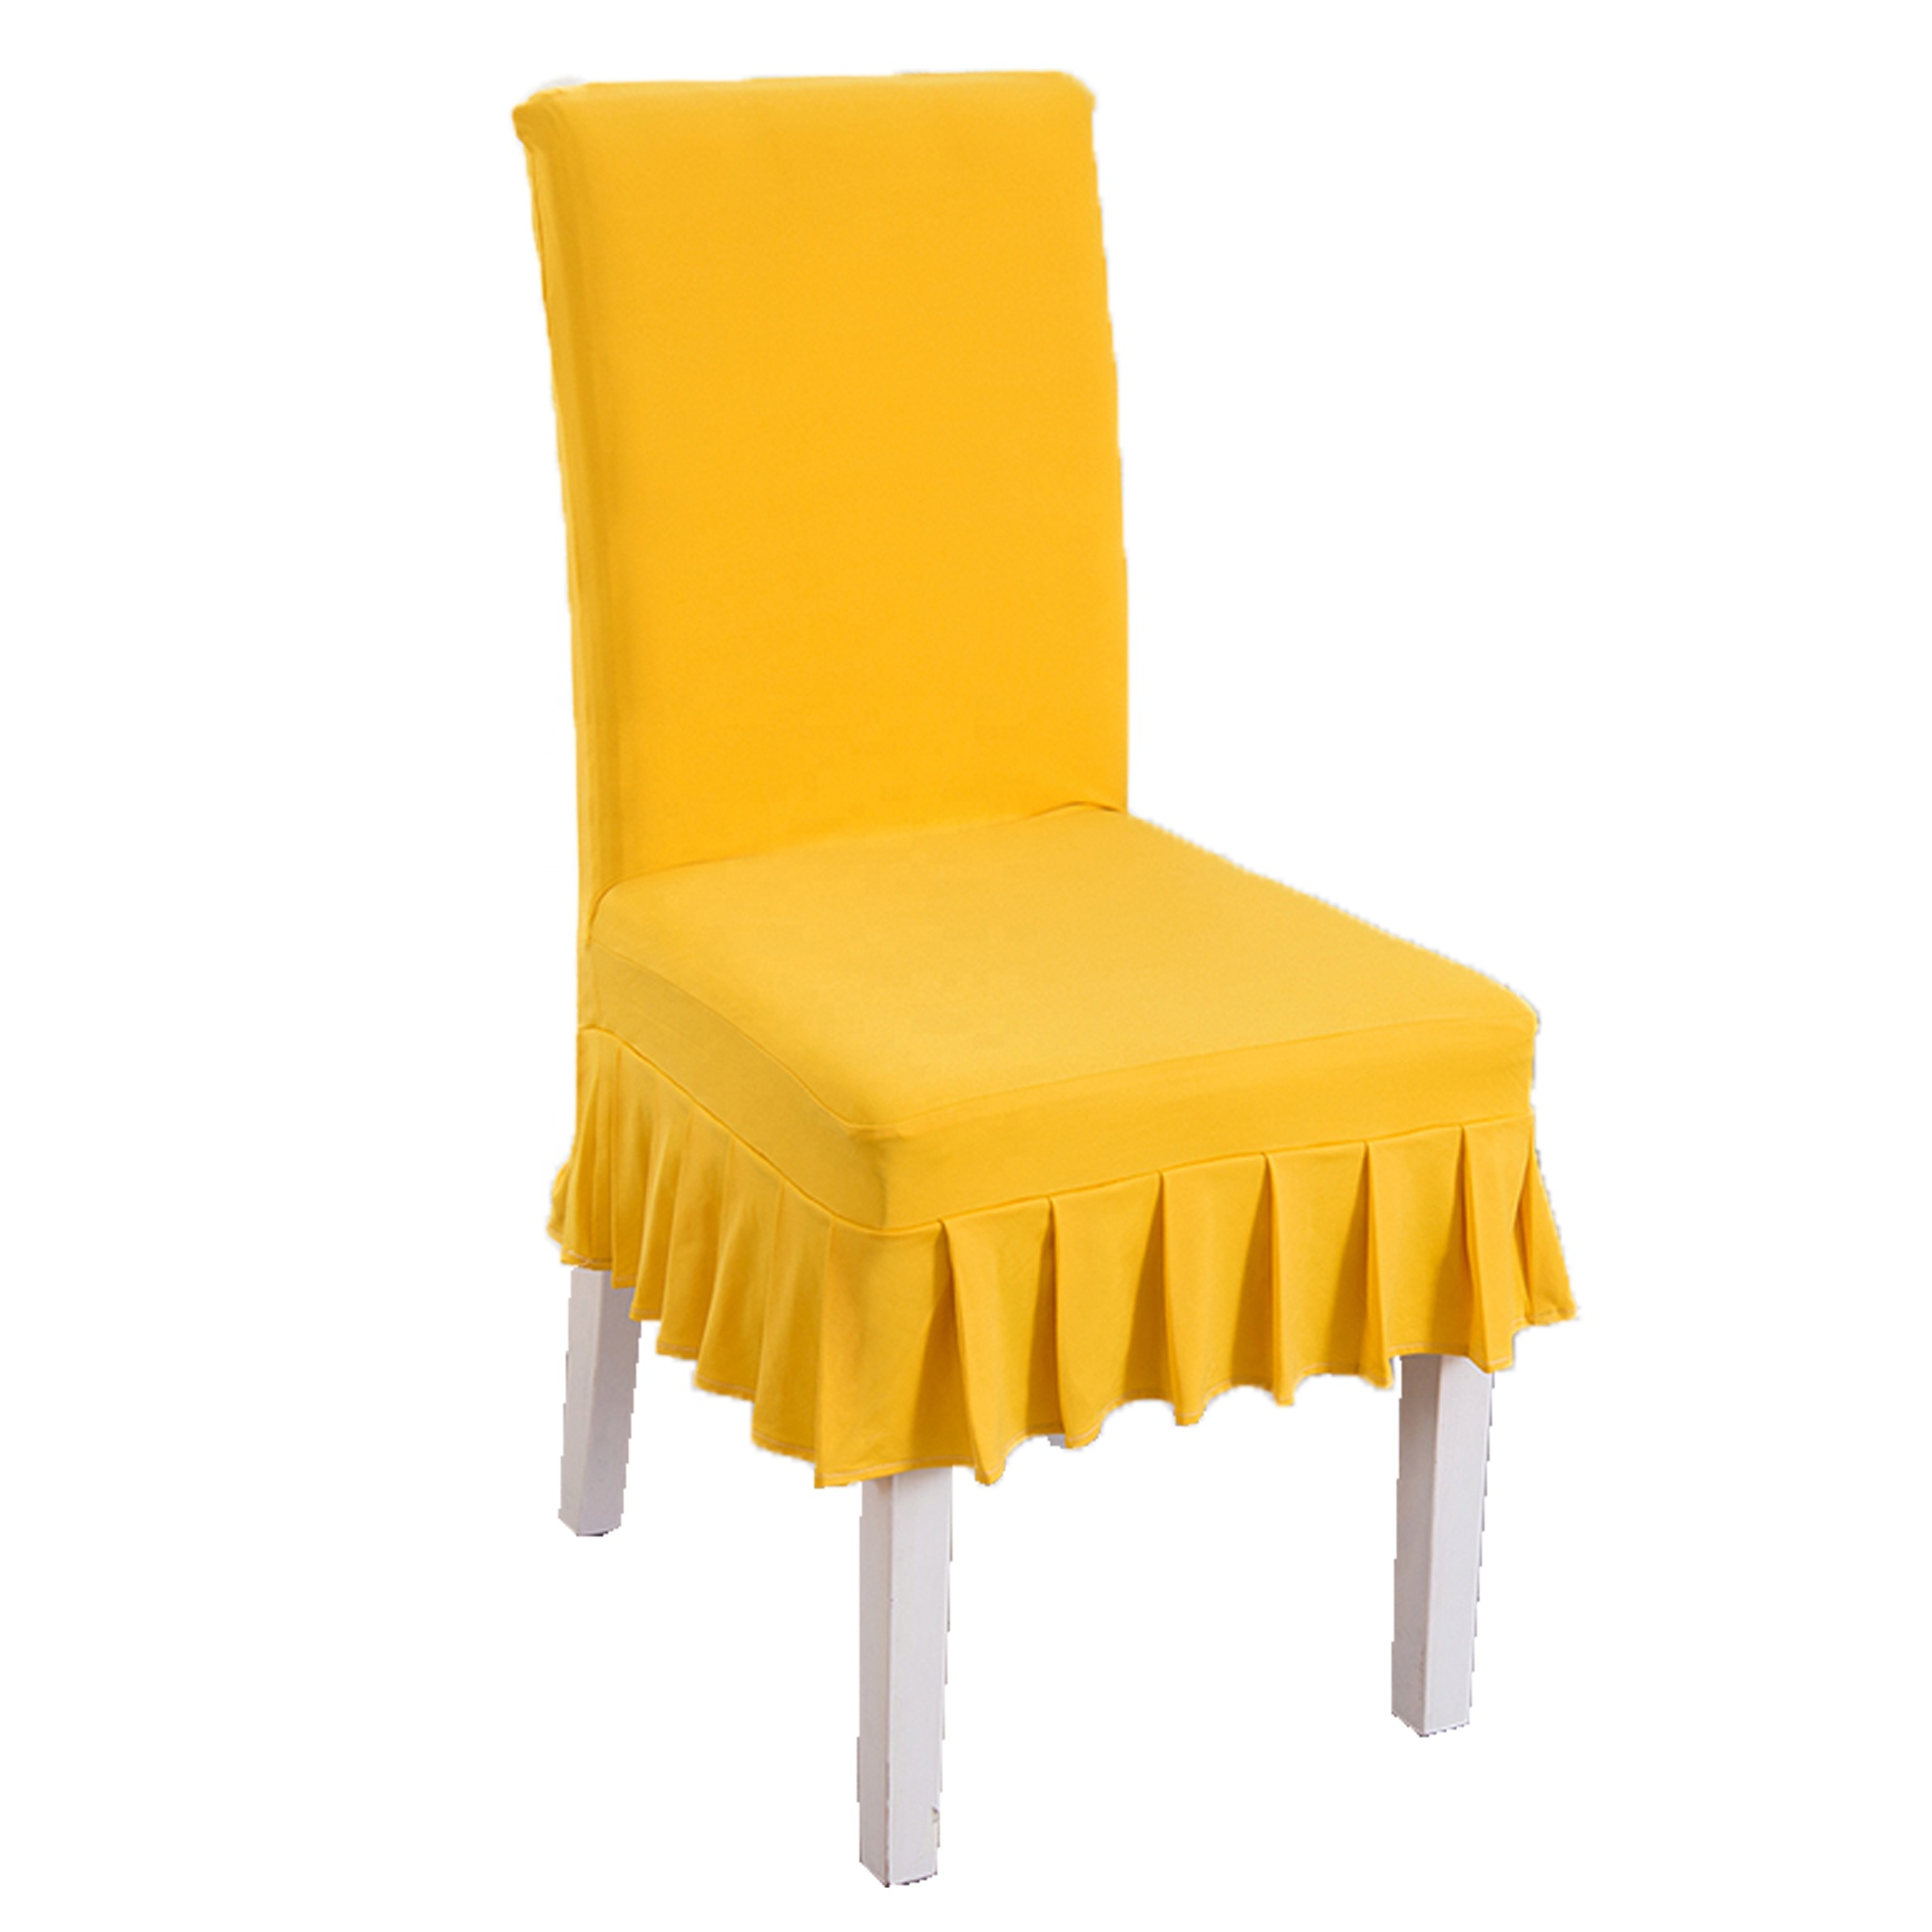 Yellow Chair Covers Spandex Banquet Chair Covers Cheap Half Yellow Chair Cover Skirt Buy Chair Cover Skirt Cheap Half Chair Cover Spandex Banquet Chair Covers Product